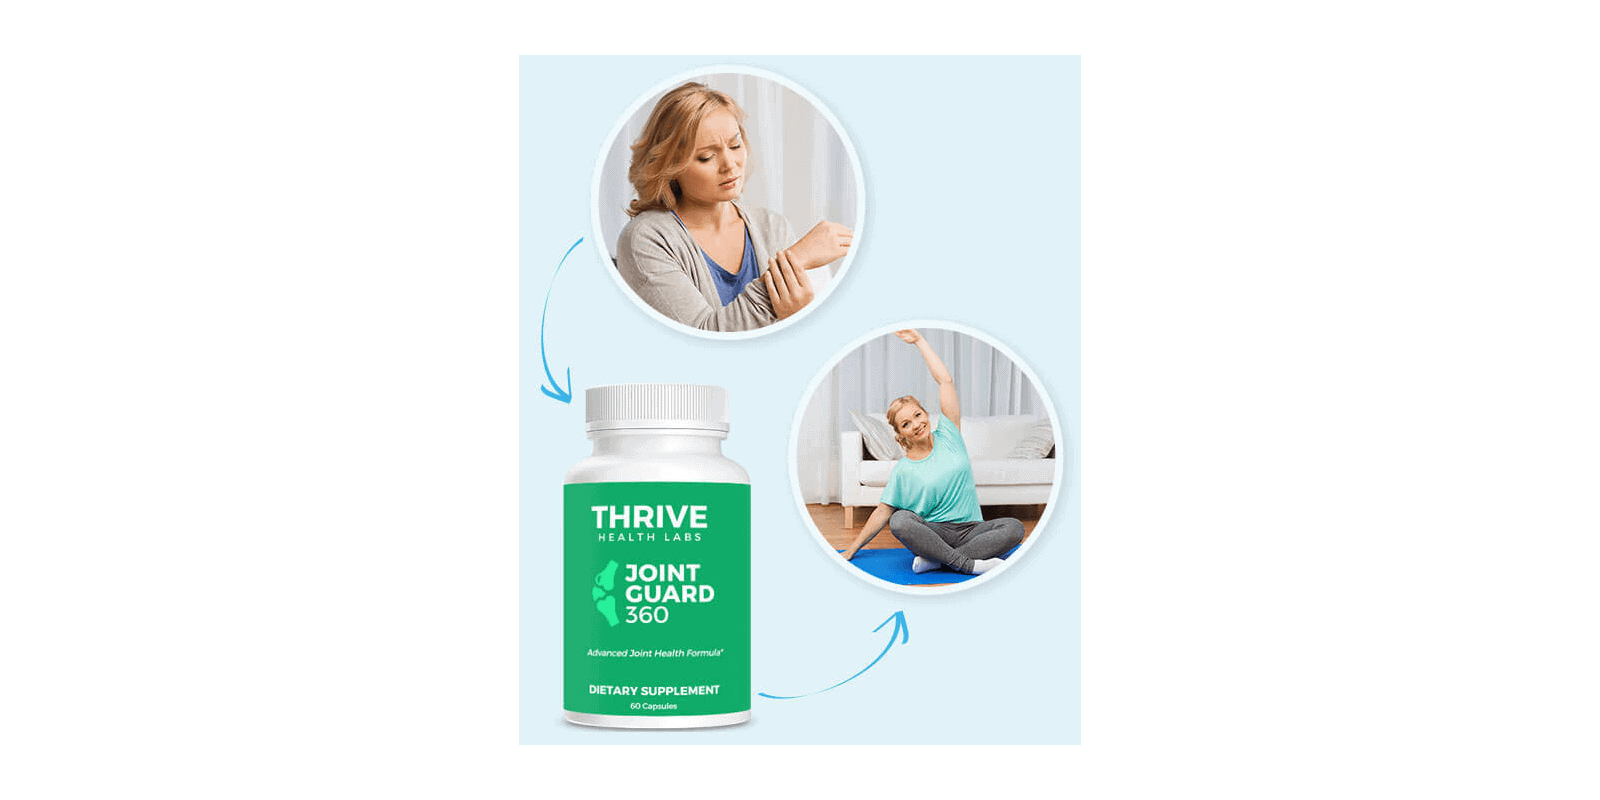 Thrive Health Labs-Joint Guard 360 Benefits